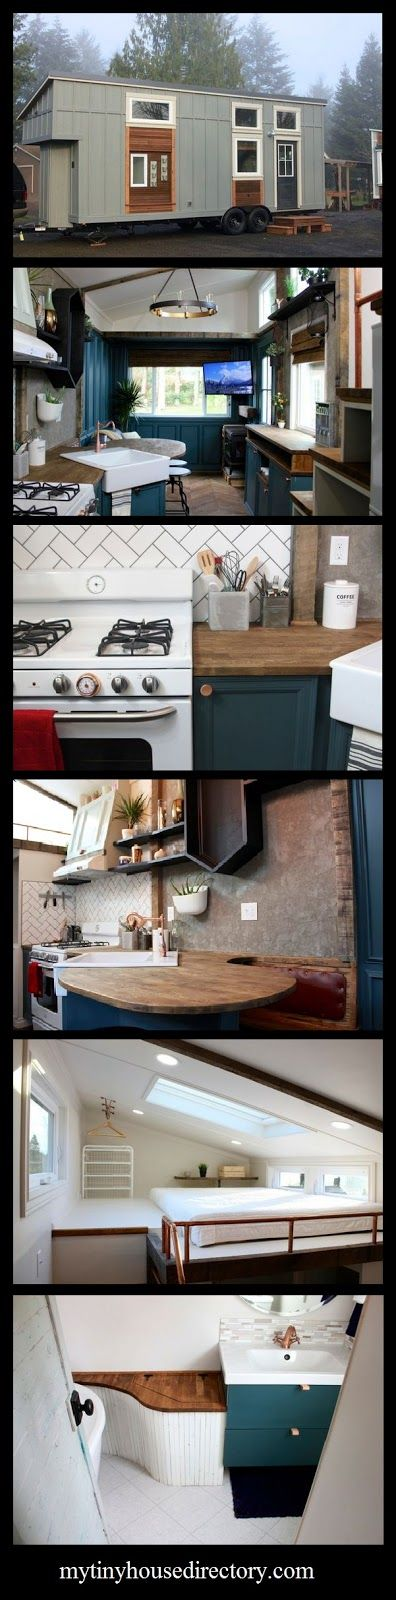 mytinyhousedirectory: Urban Craftsman by Handcrafted Movement ~ Spectacu...